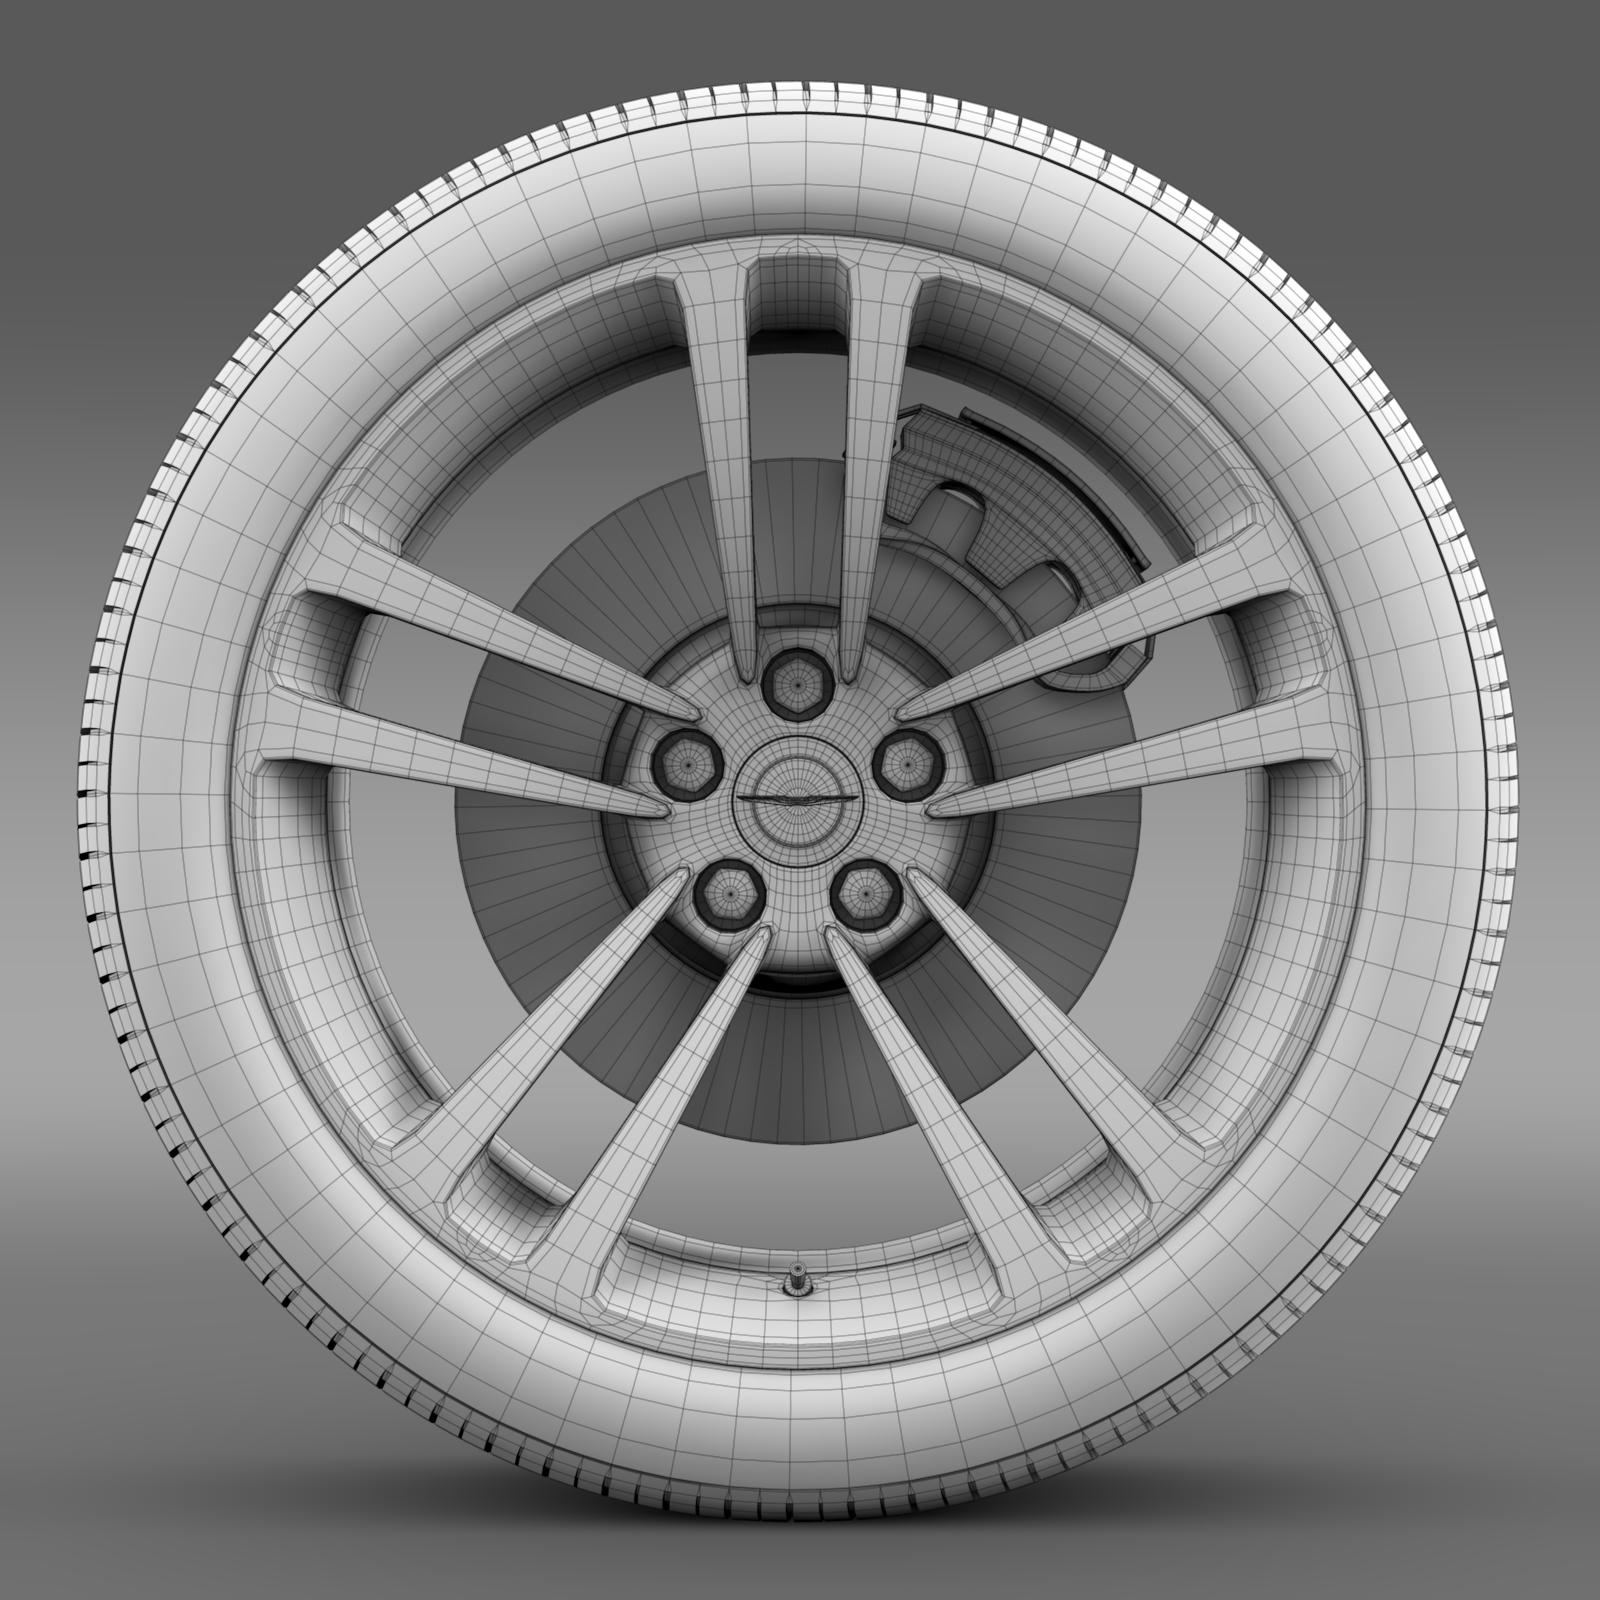 chrysler 300 srt8 core wheel 3d model 3ds max fbx c4d lwo ma mb hrc xsi obj 210635